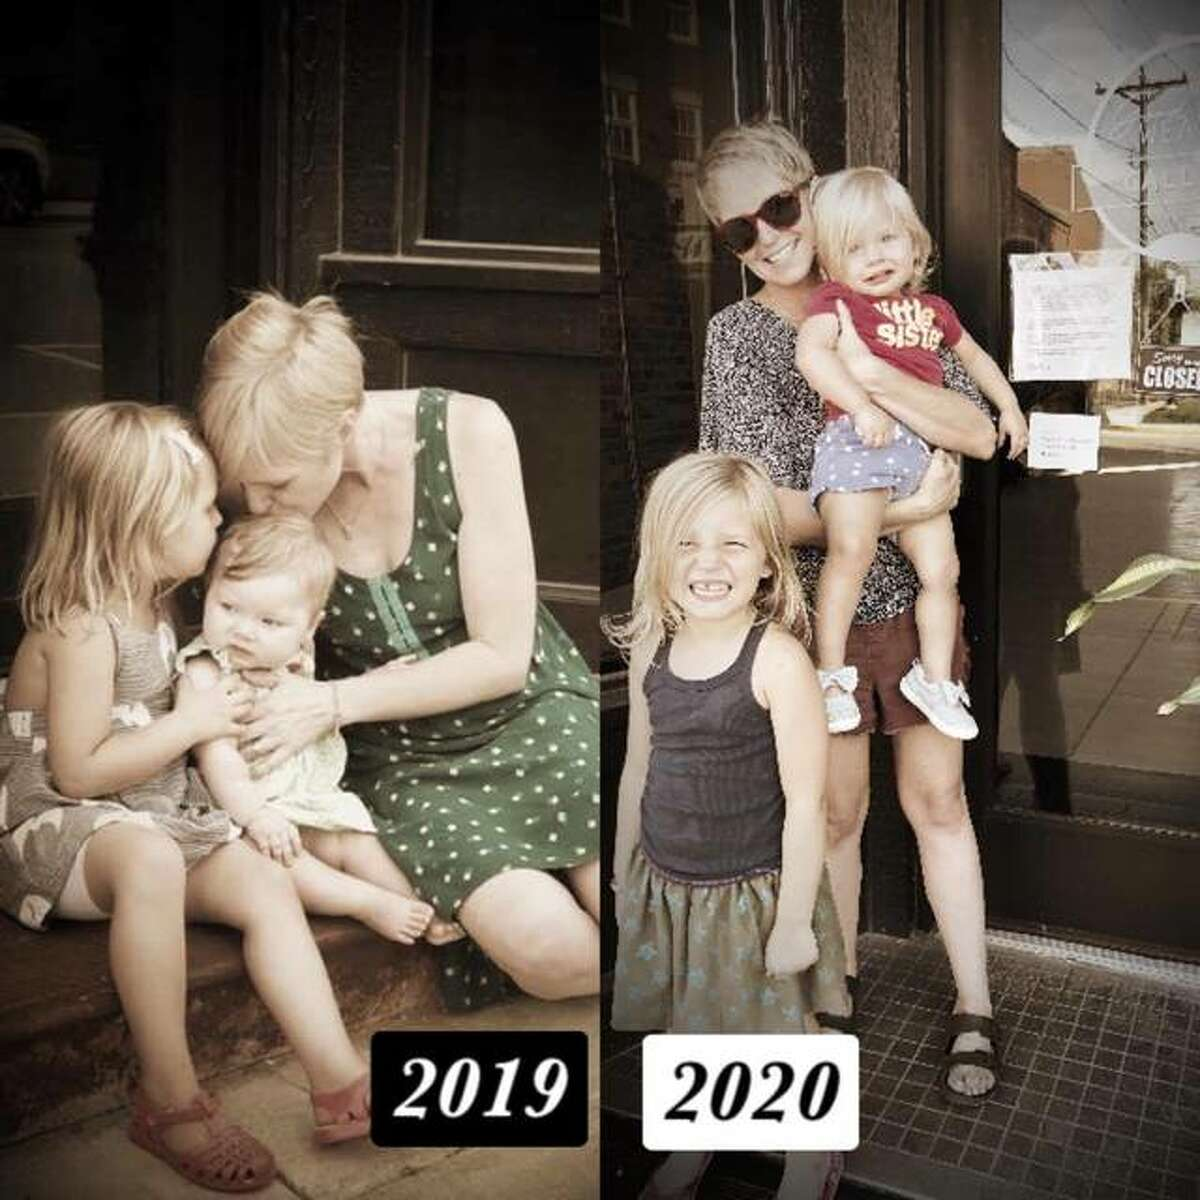 Good Weather Gallery owner and curator Brooke Peipert, of Alton, in 2019, left, and then in 2020, with her daughters Hazel, 5, and Juniper, 1, both of whom are always with Peipert most of the time when she is at the gallery. Peipert opened Good Weather Gallery and her daughters are inspiration for Peipert.